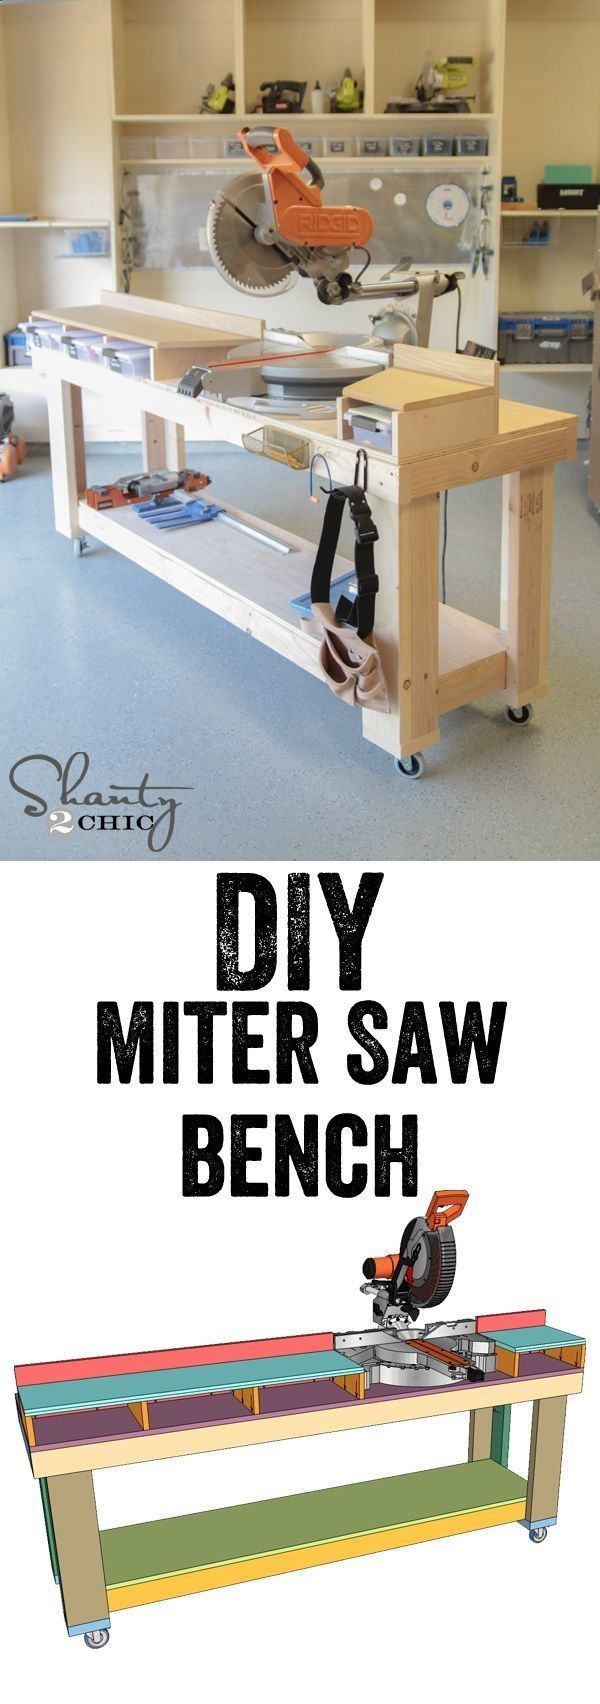 Free Plans...DIY Miter Saw Bench! Plans for the workbench and the miter saw station! www.shanty-2-chic...